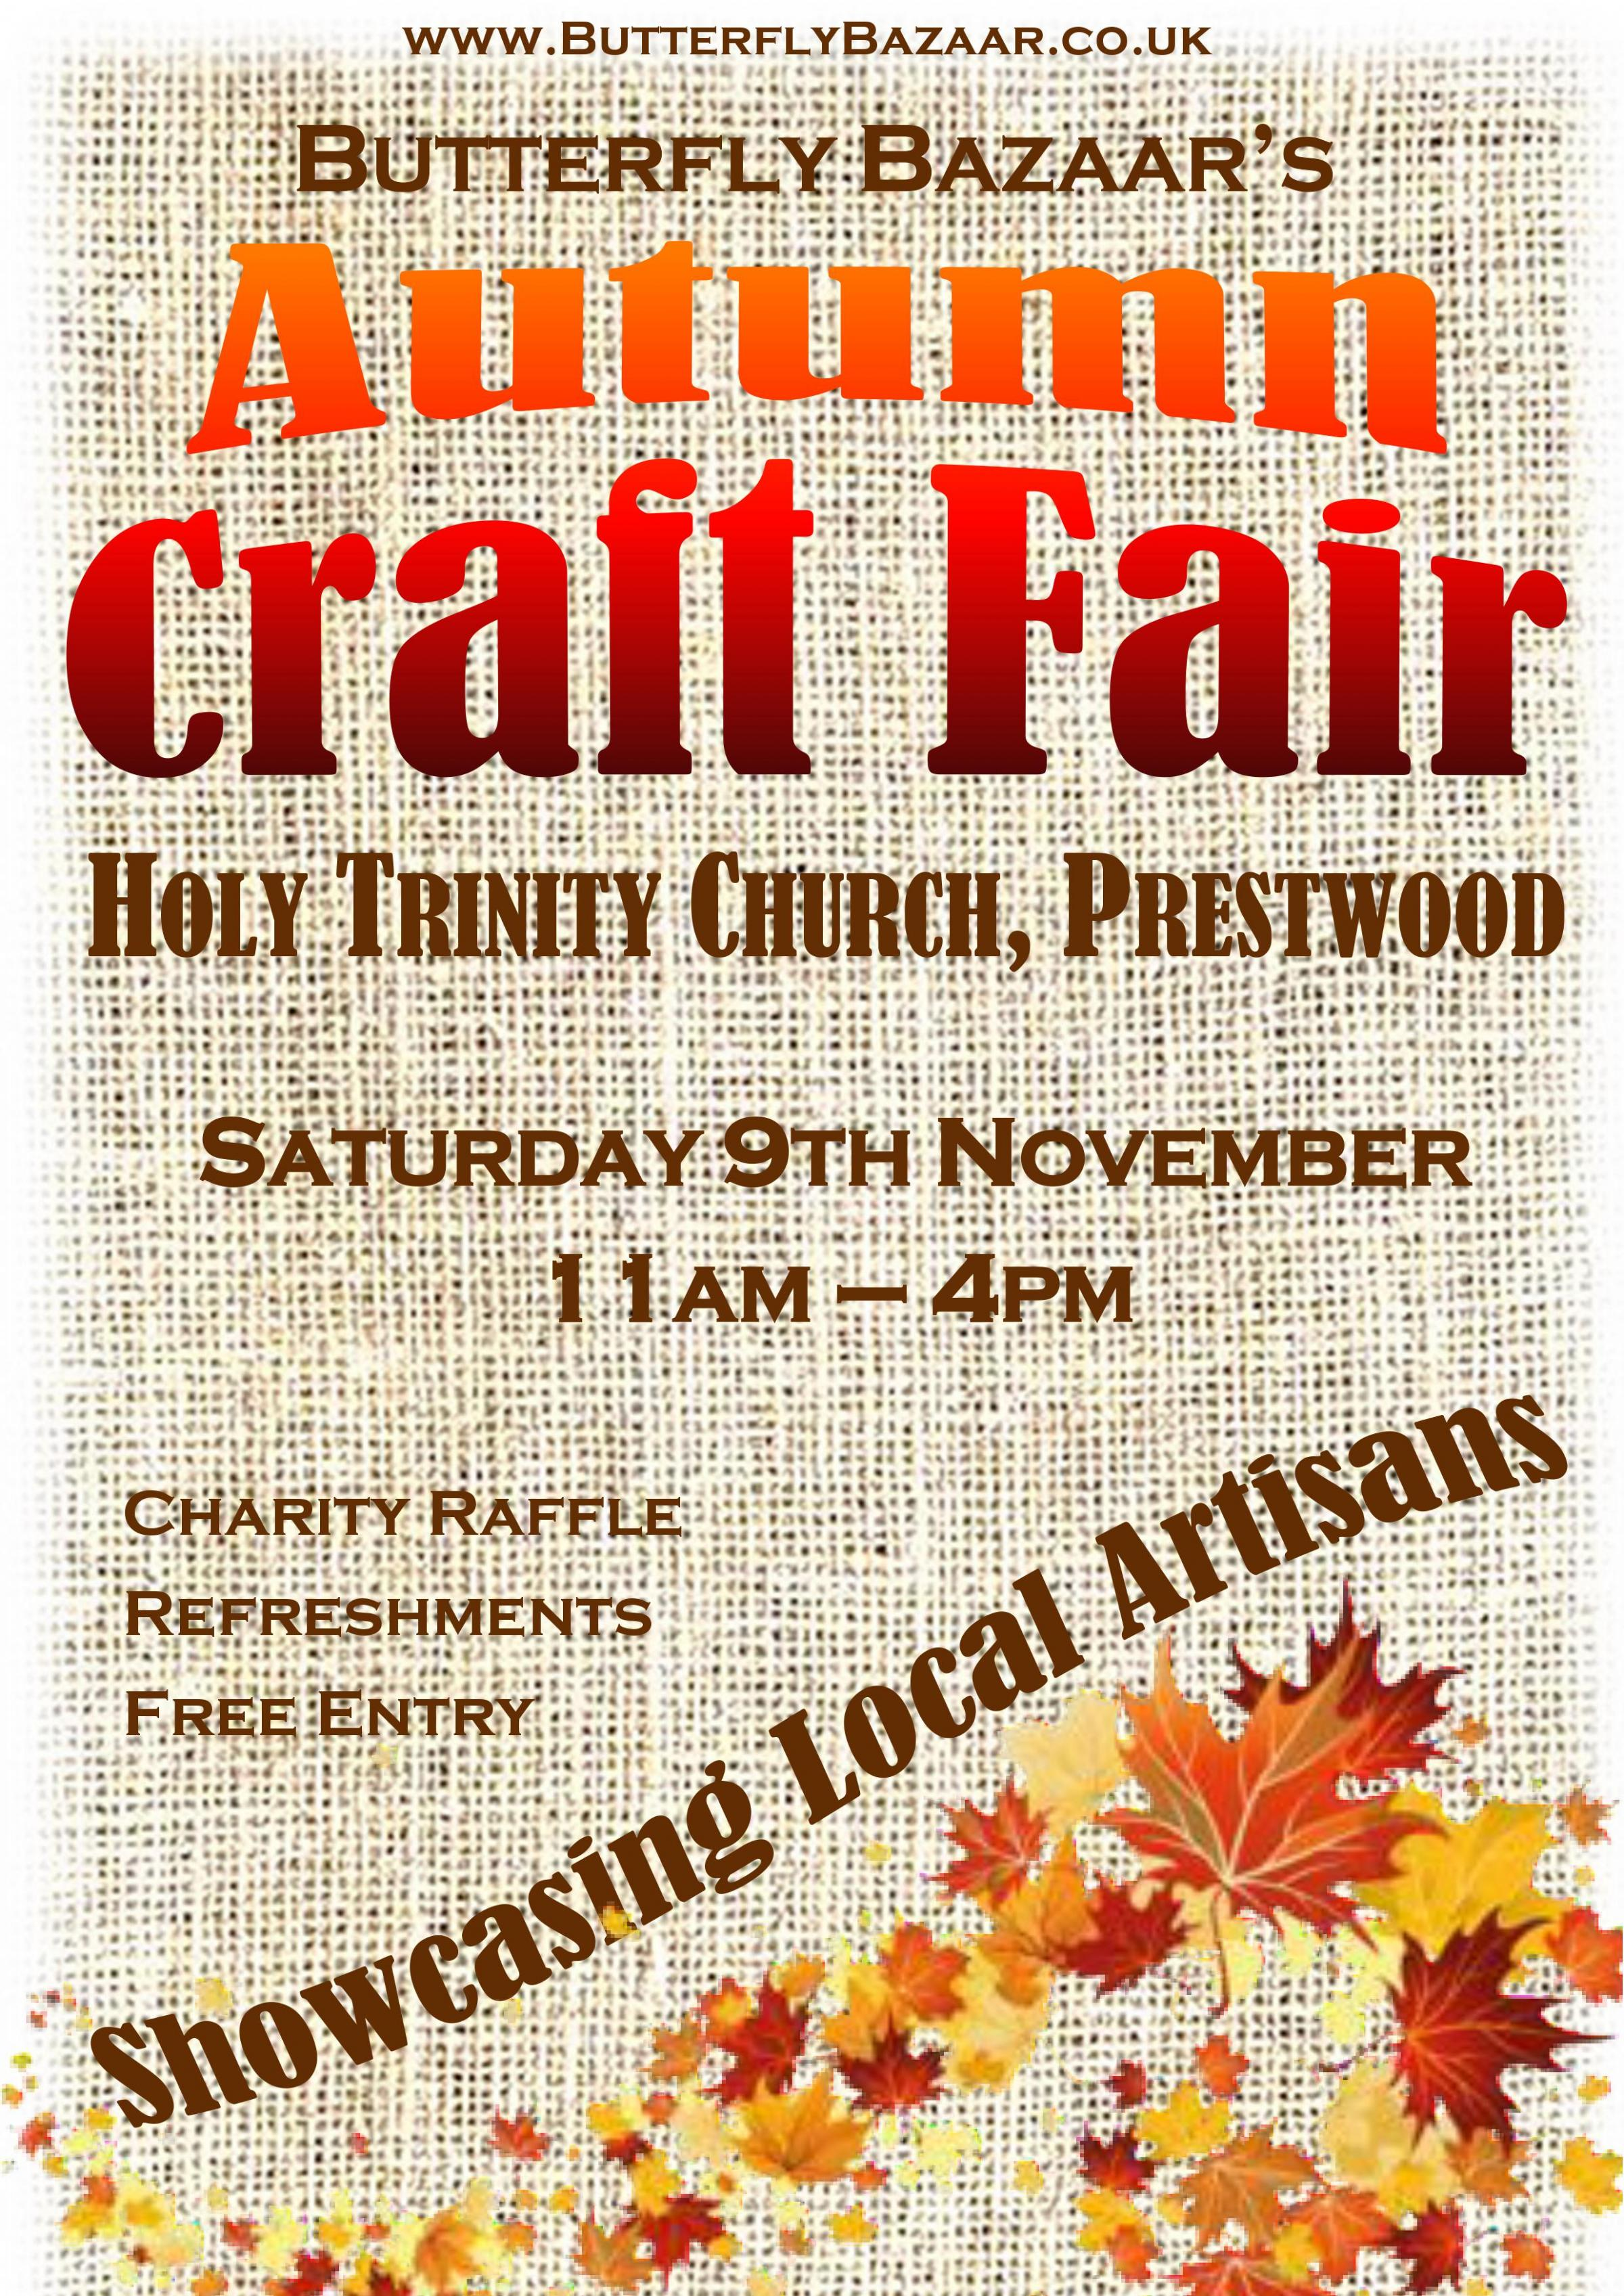 Butterfly Bazaar's Autumn Craft Fair